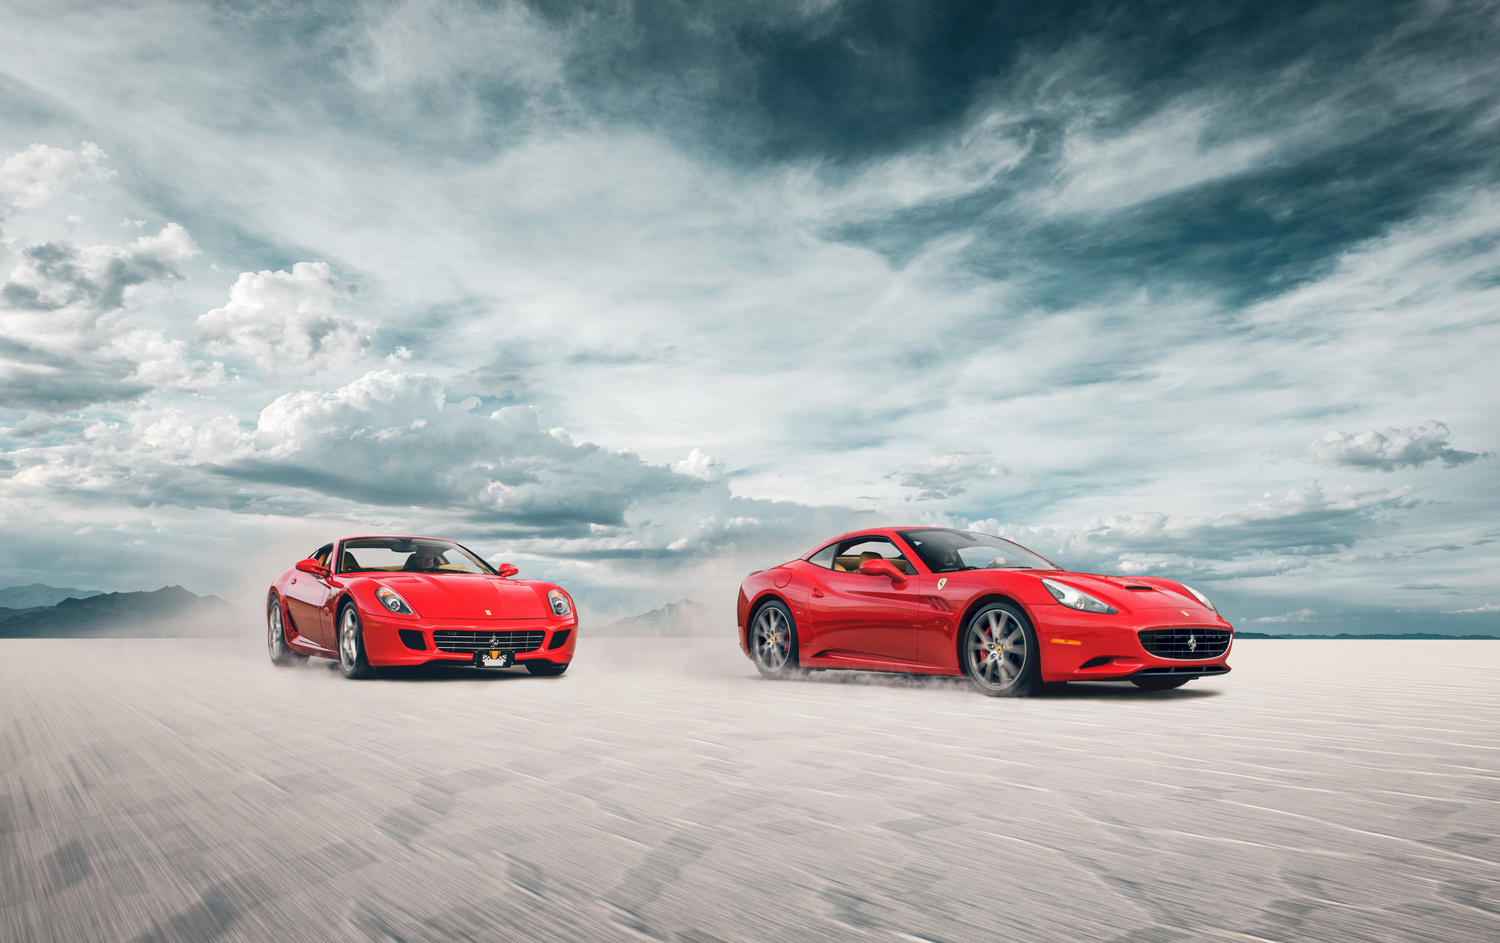 Ferrari 599 GTB Fiorano and Ferrari California by Dominic Mann